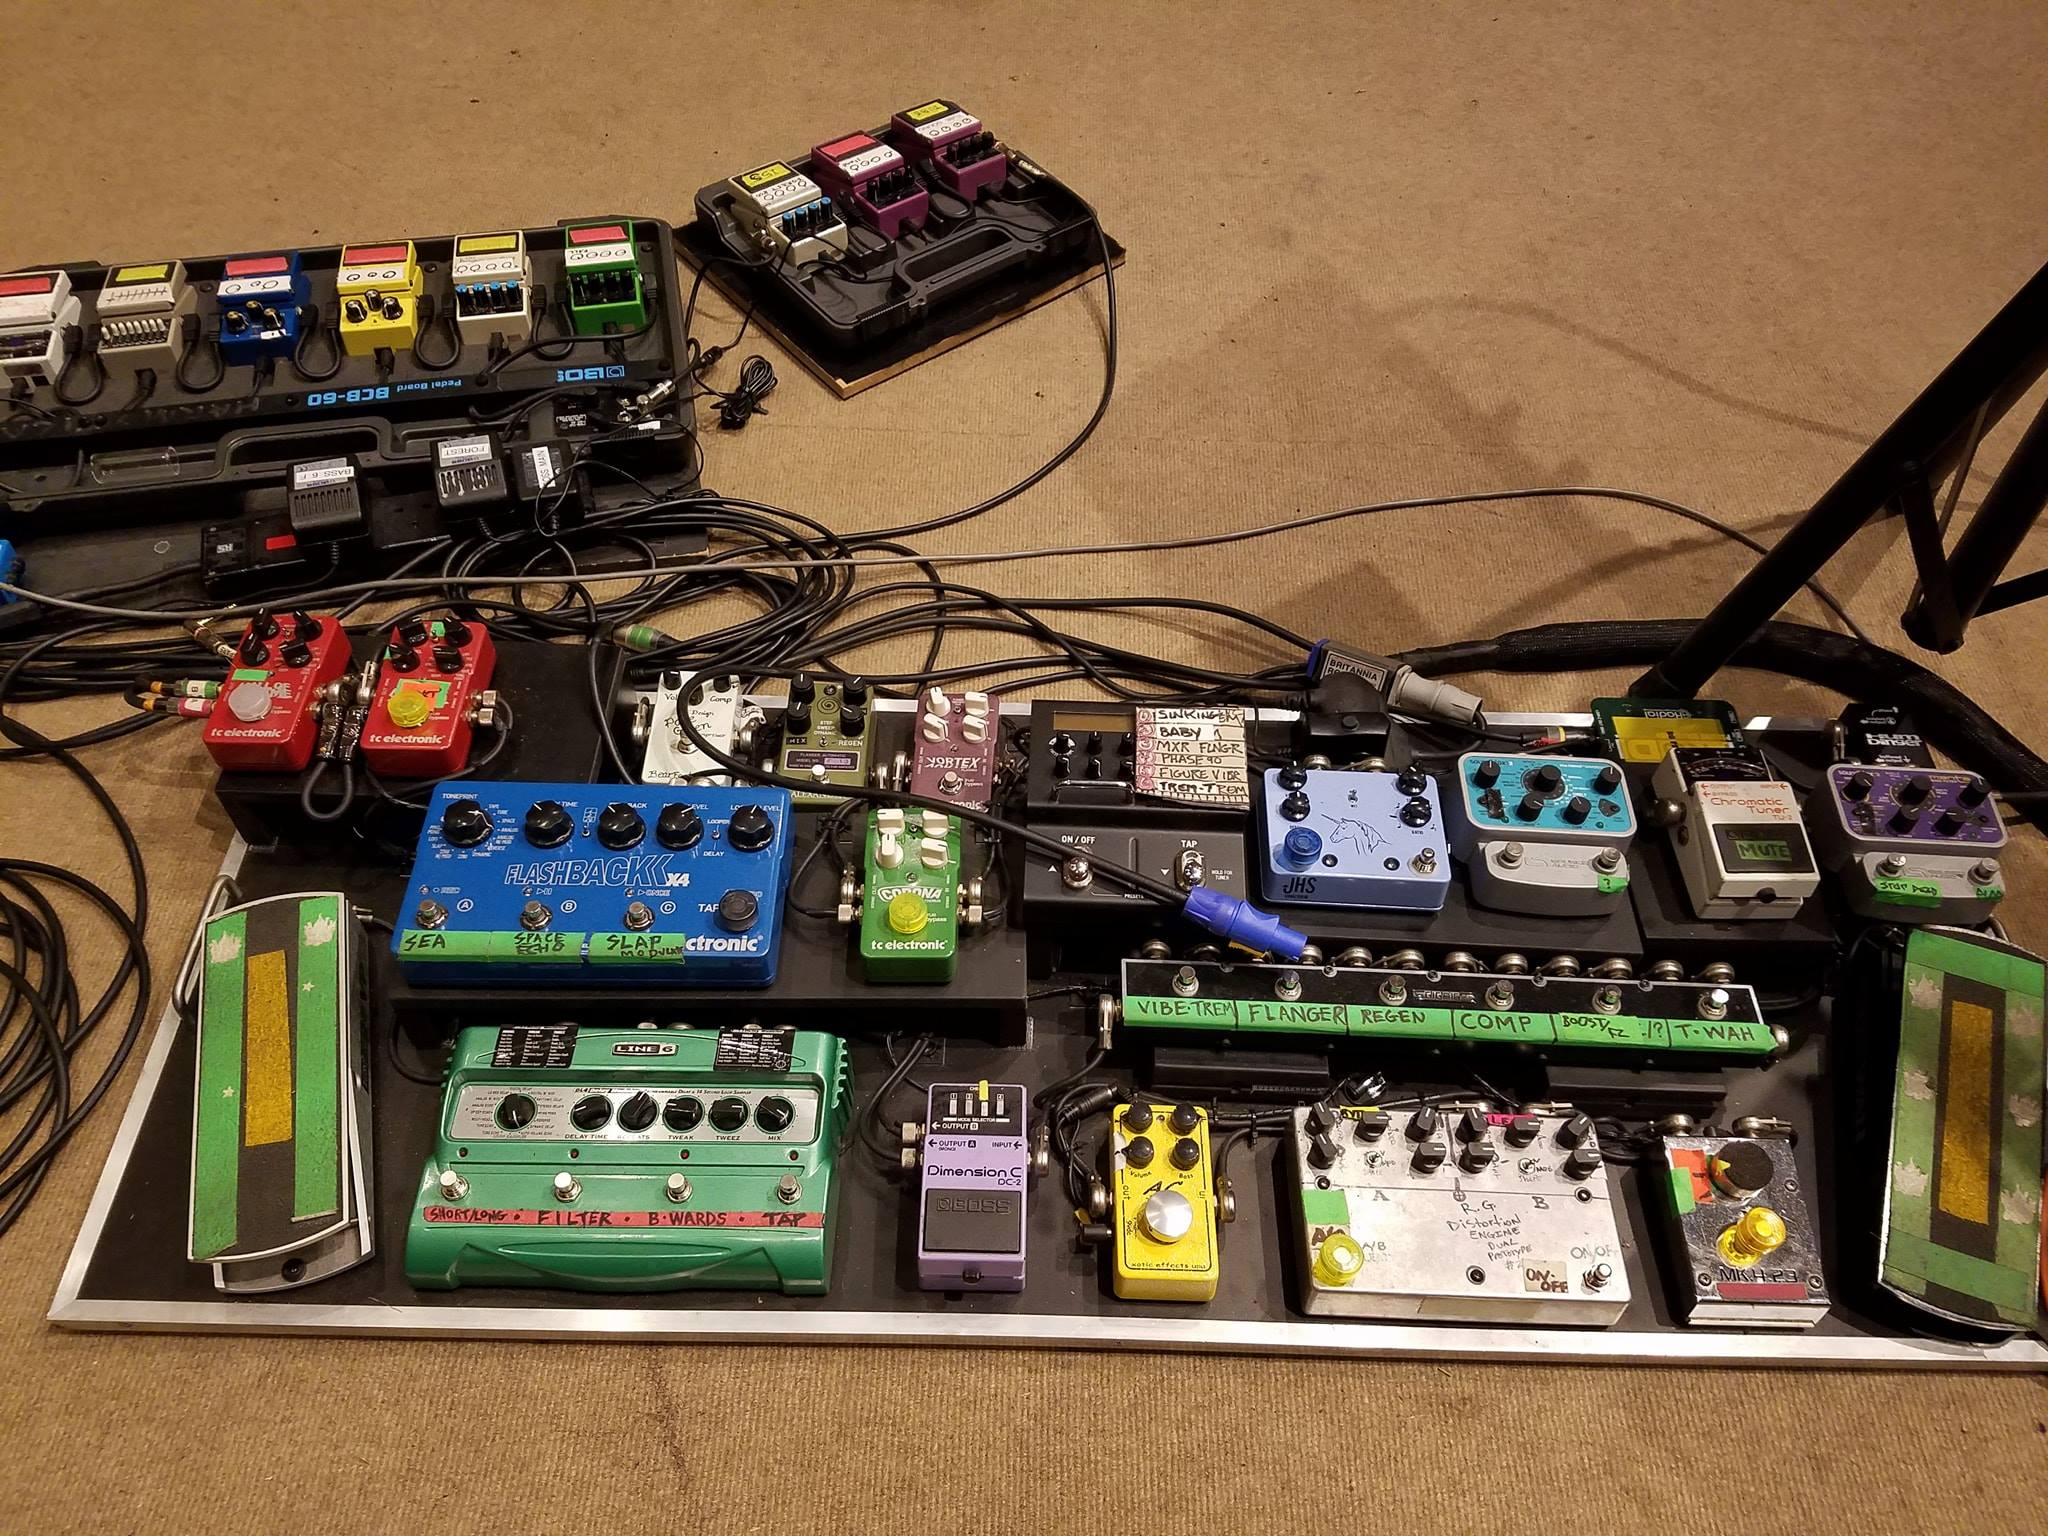 The Cure - Robert Smith / Reeven Gabrels Boards